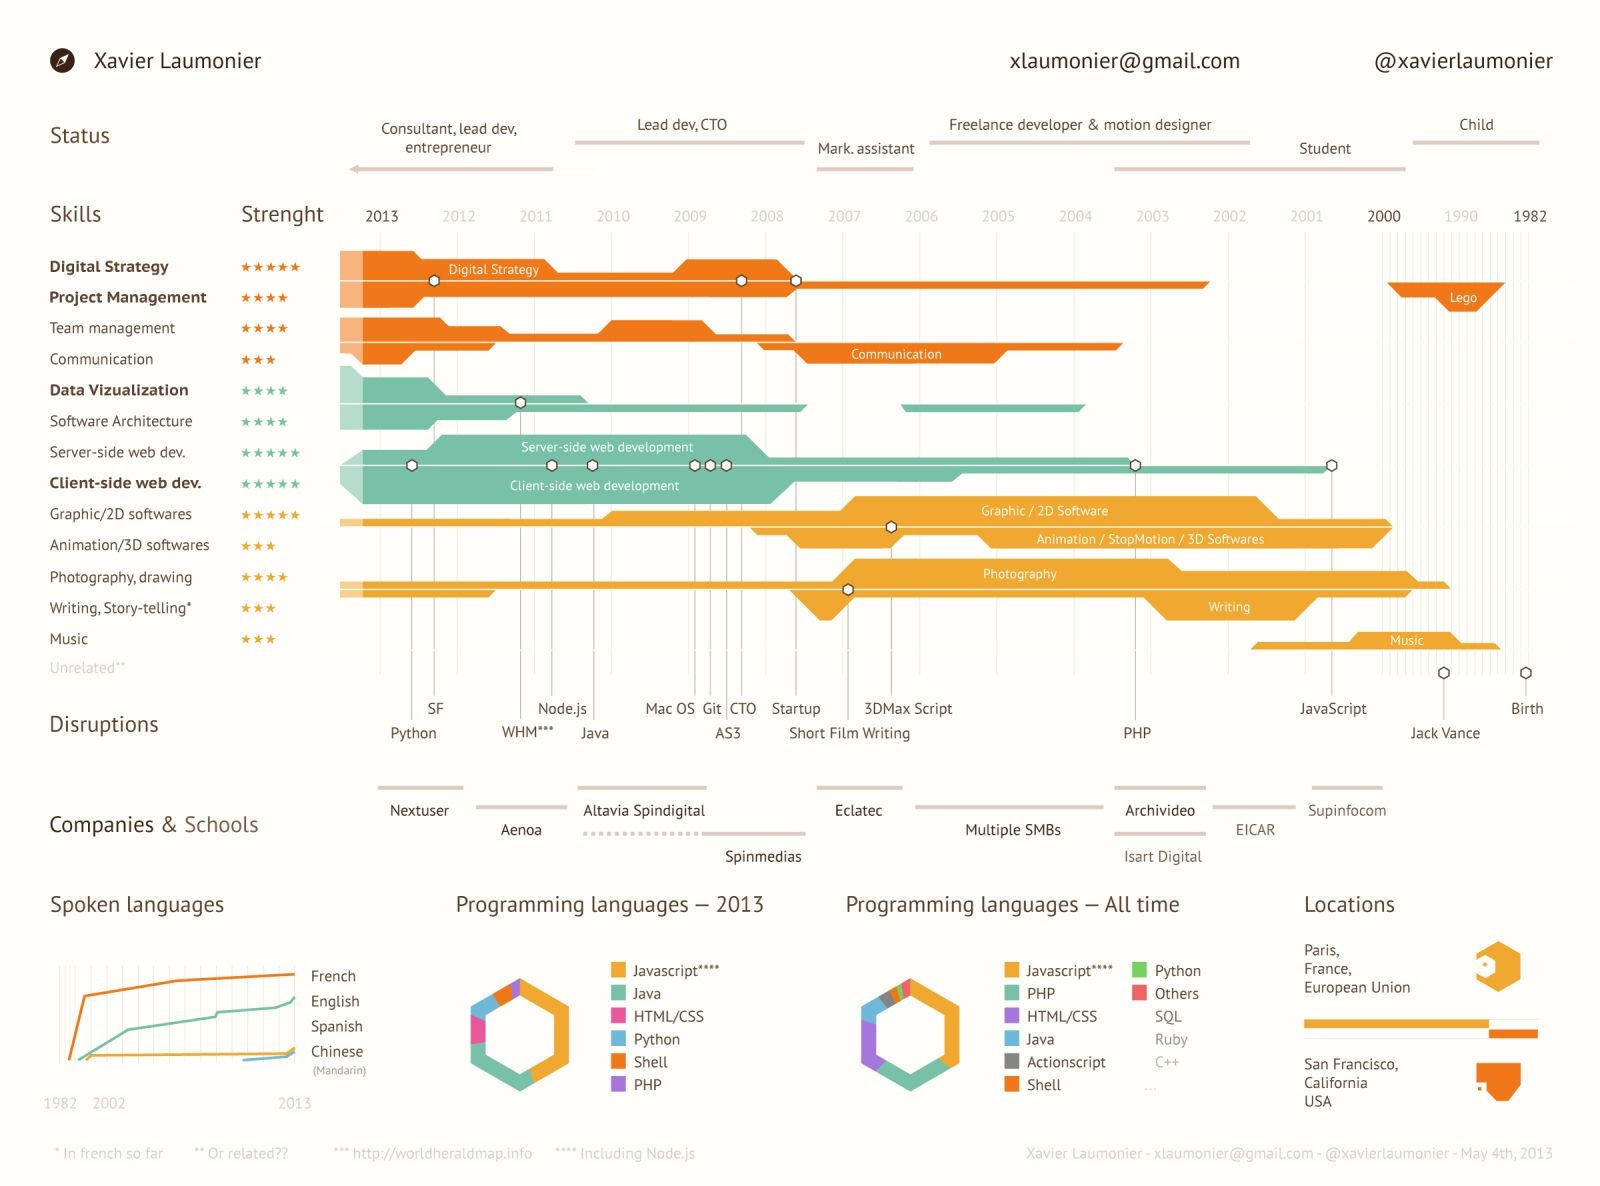 xavier laumonier visual resume i am thinking about making my resume like this am post it on my